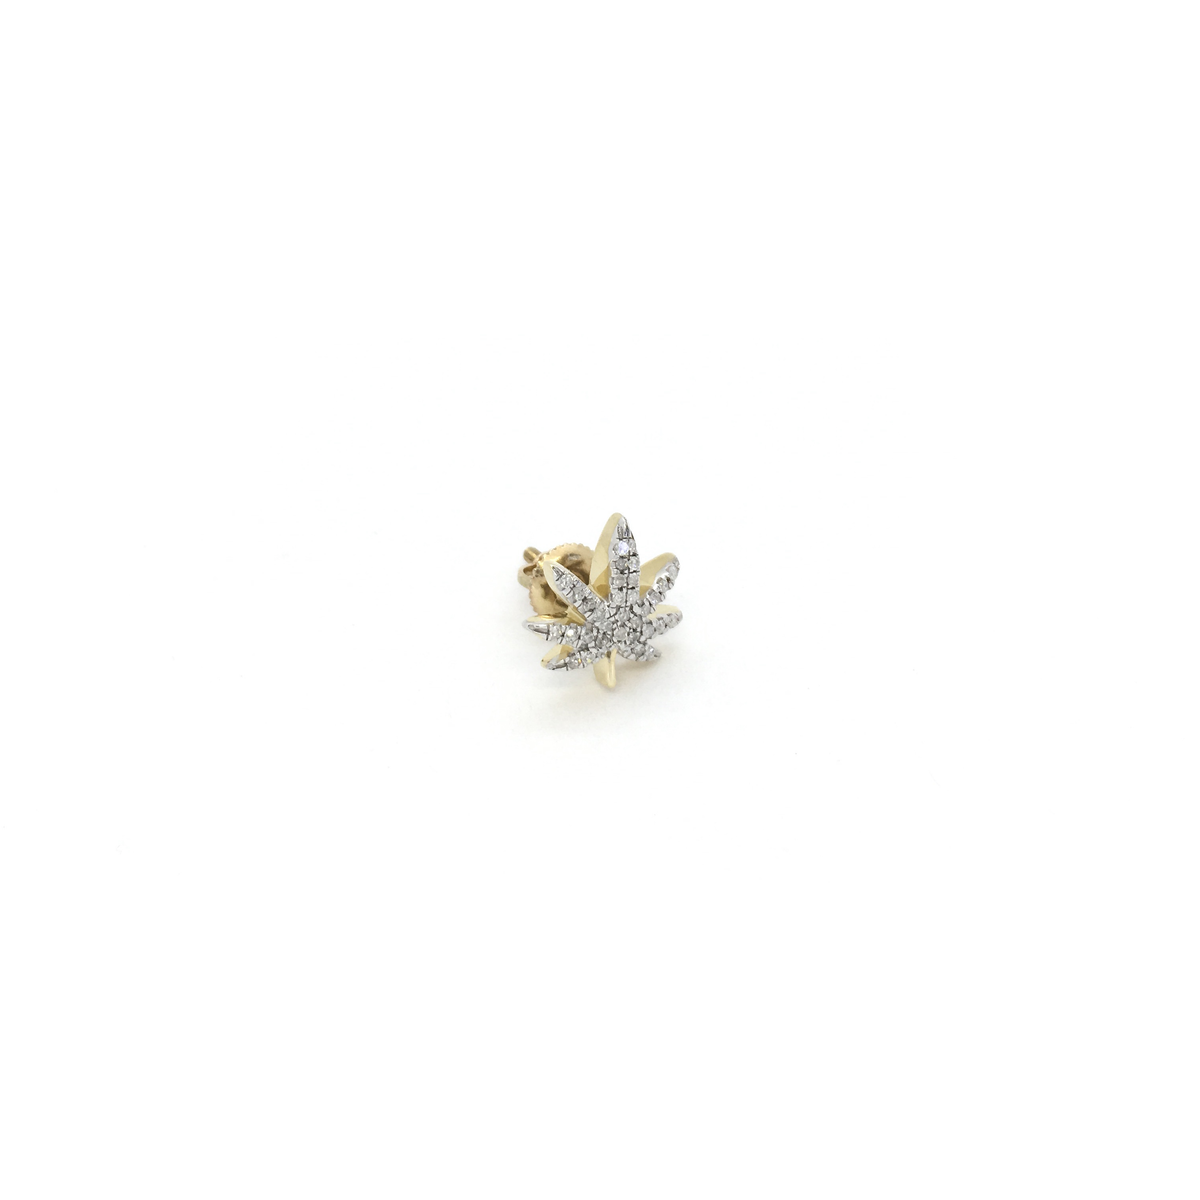 412a54cf1ddda Diamond Iced Marijuana Leaf Stud Earrings (10K)